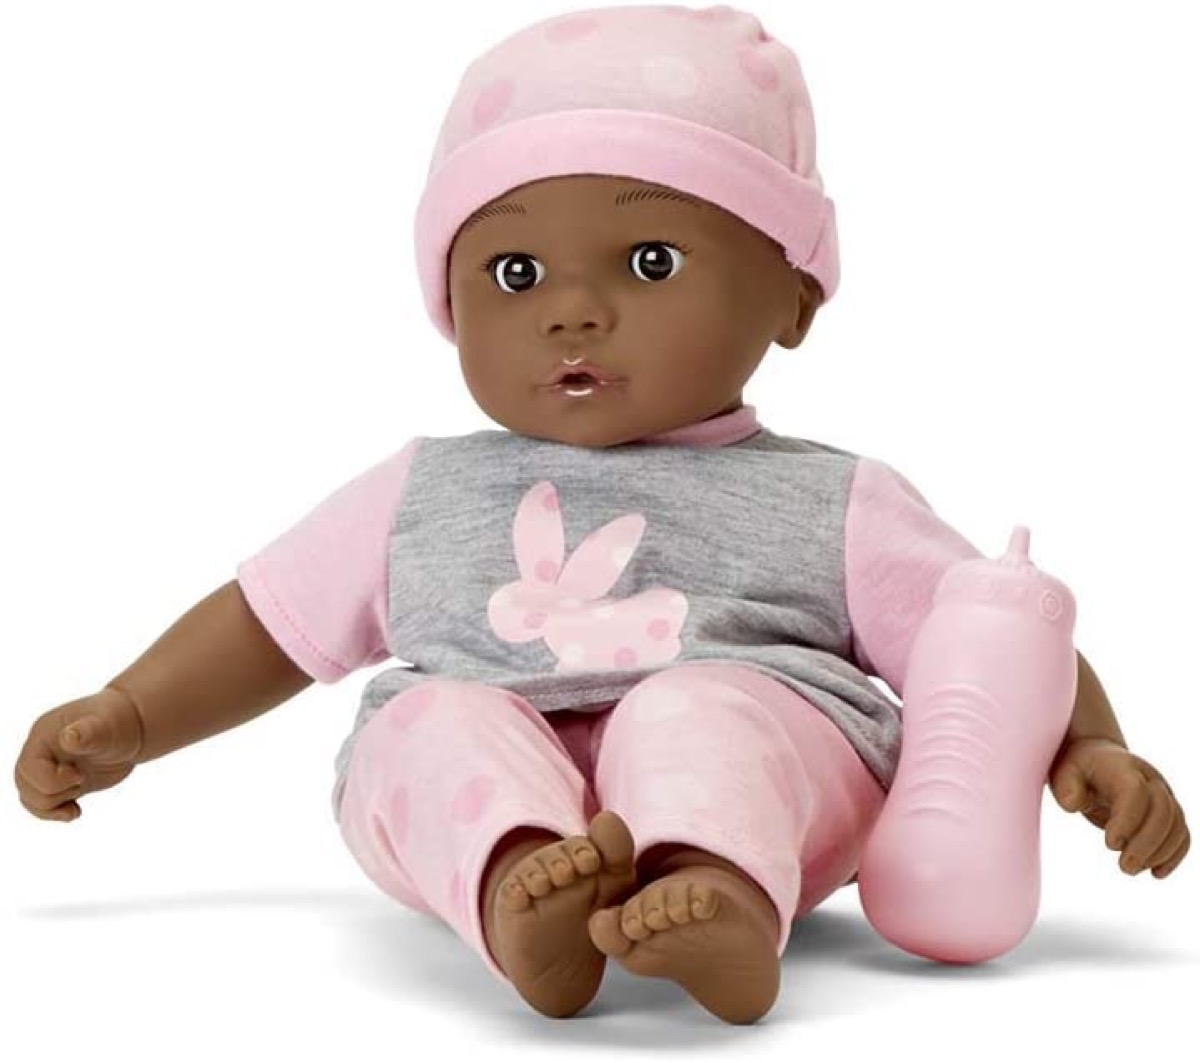 baby doll in pink and gray outfit with pink baby bottle